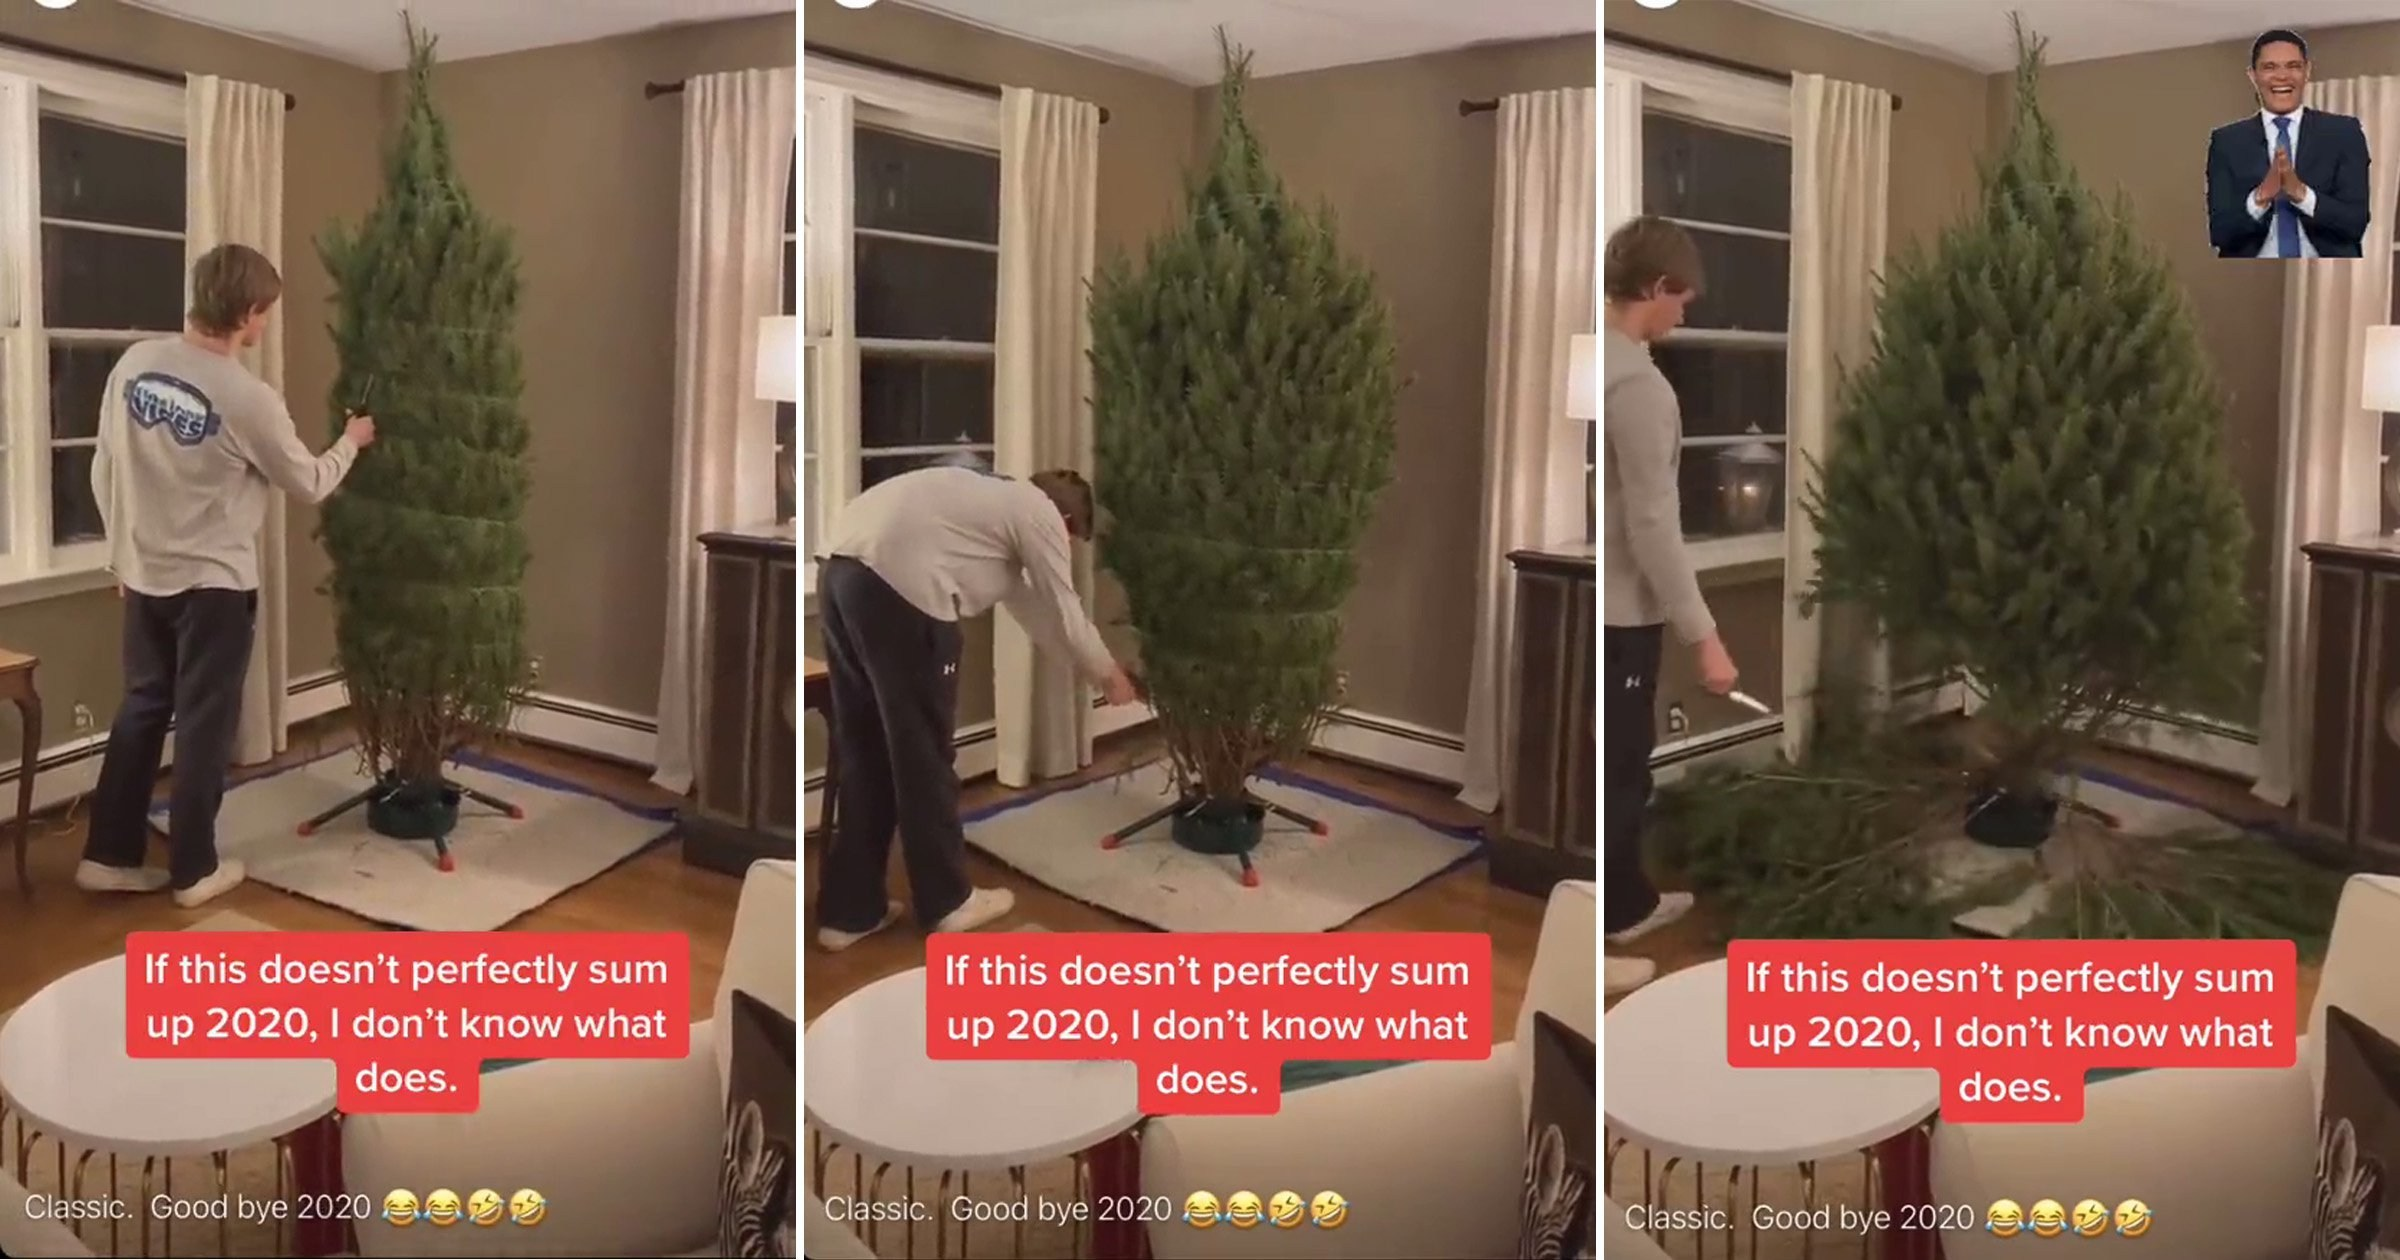 'World's worst' Christmas tree falls apart instantly and 'sums up 2020'